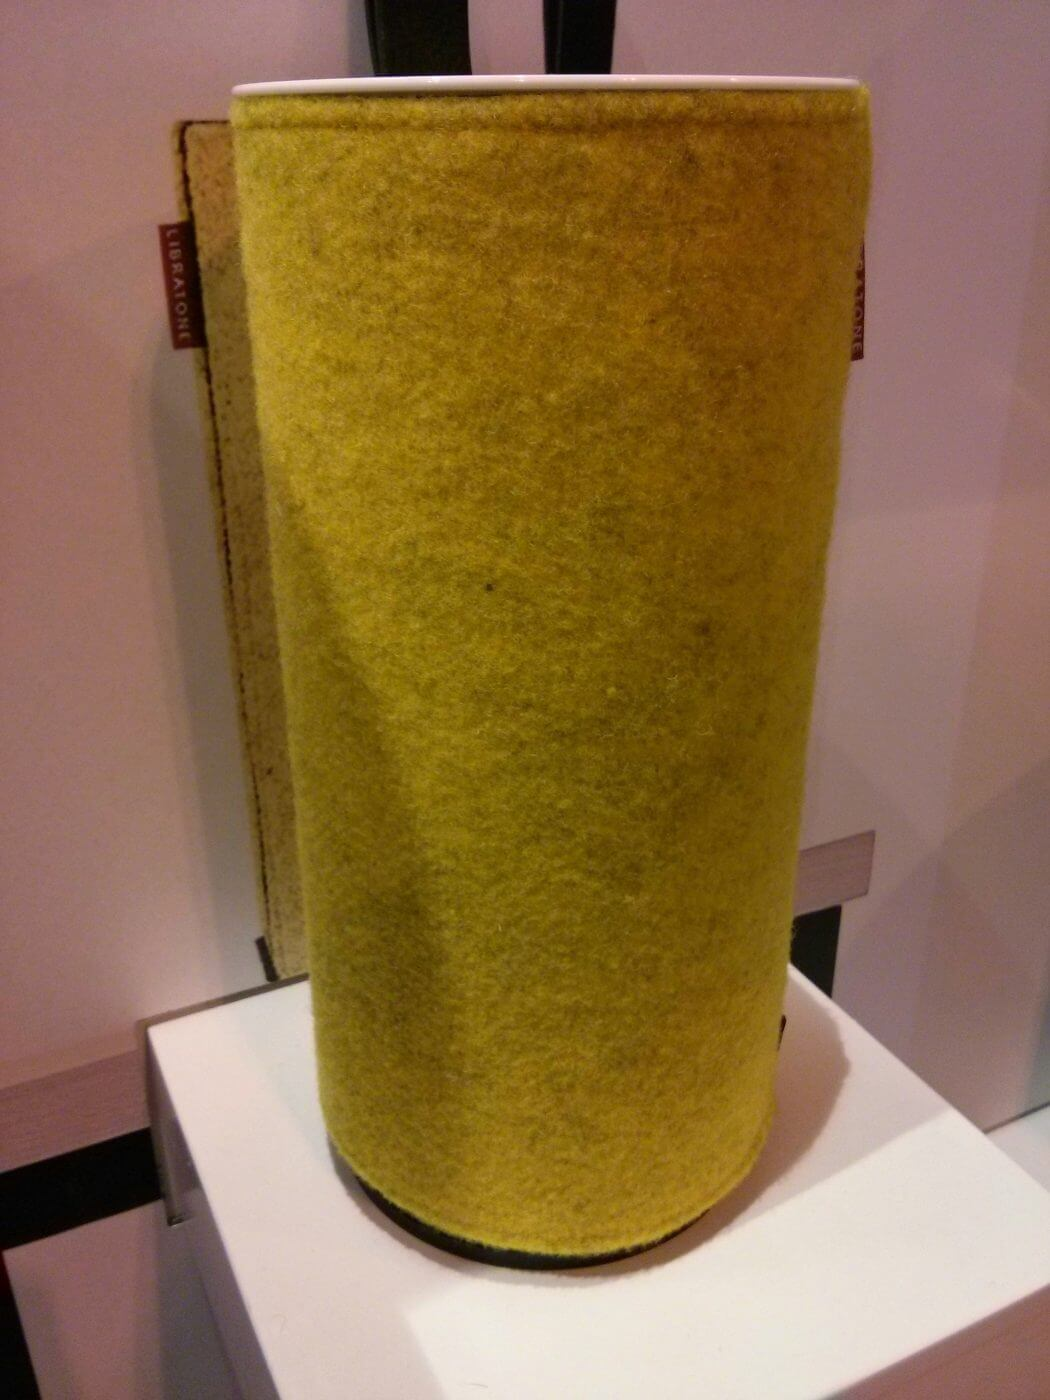 Libratone Speakers at The Gadget Show